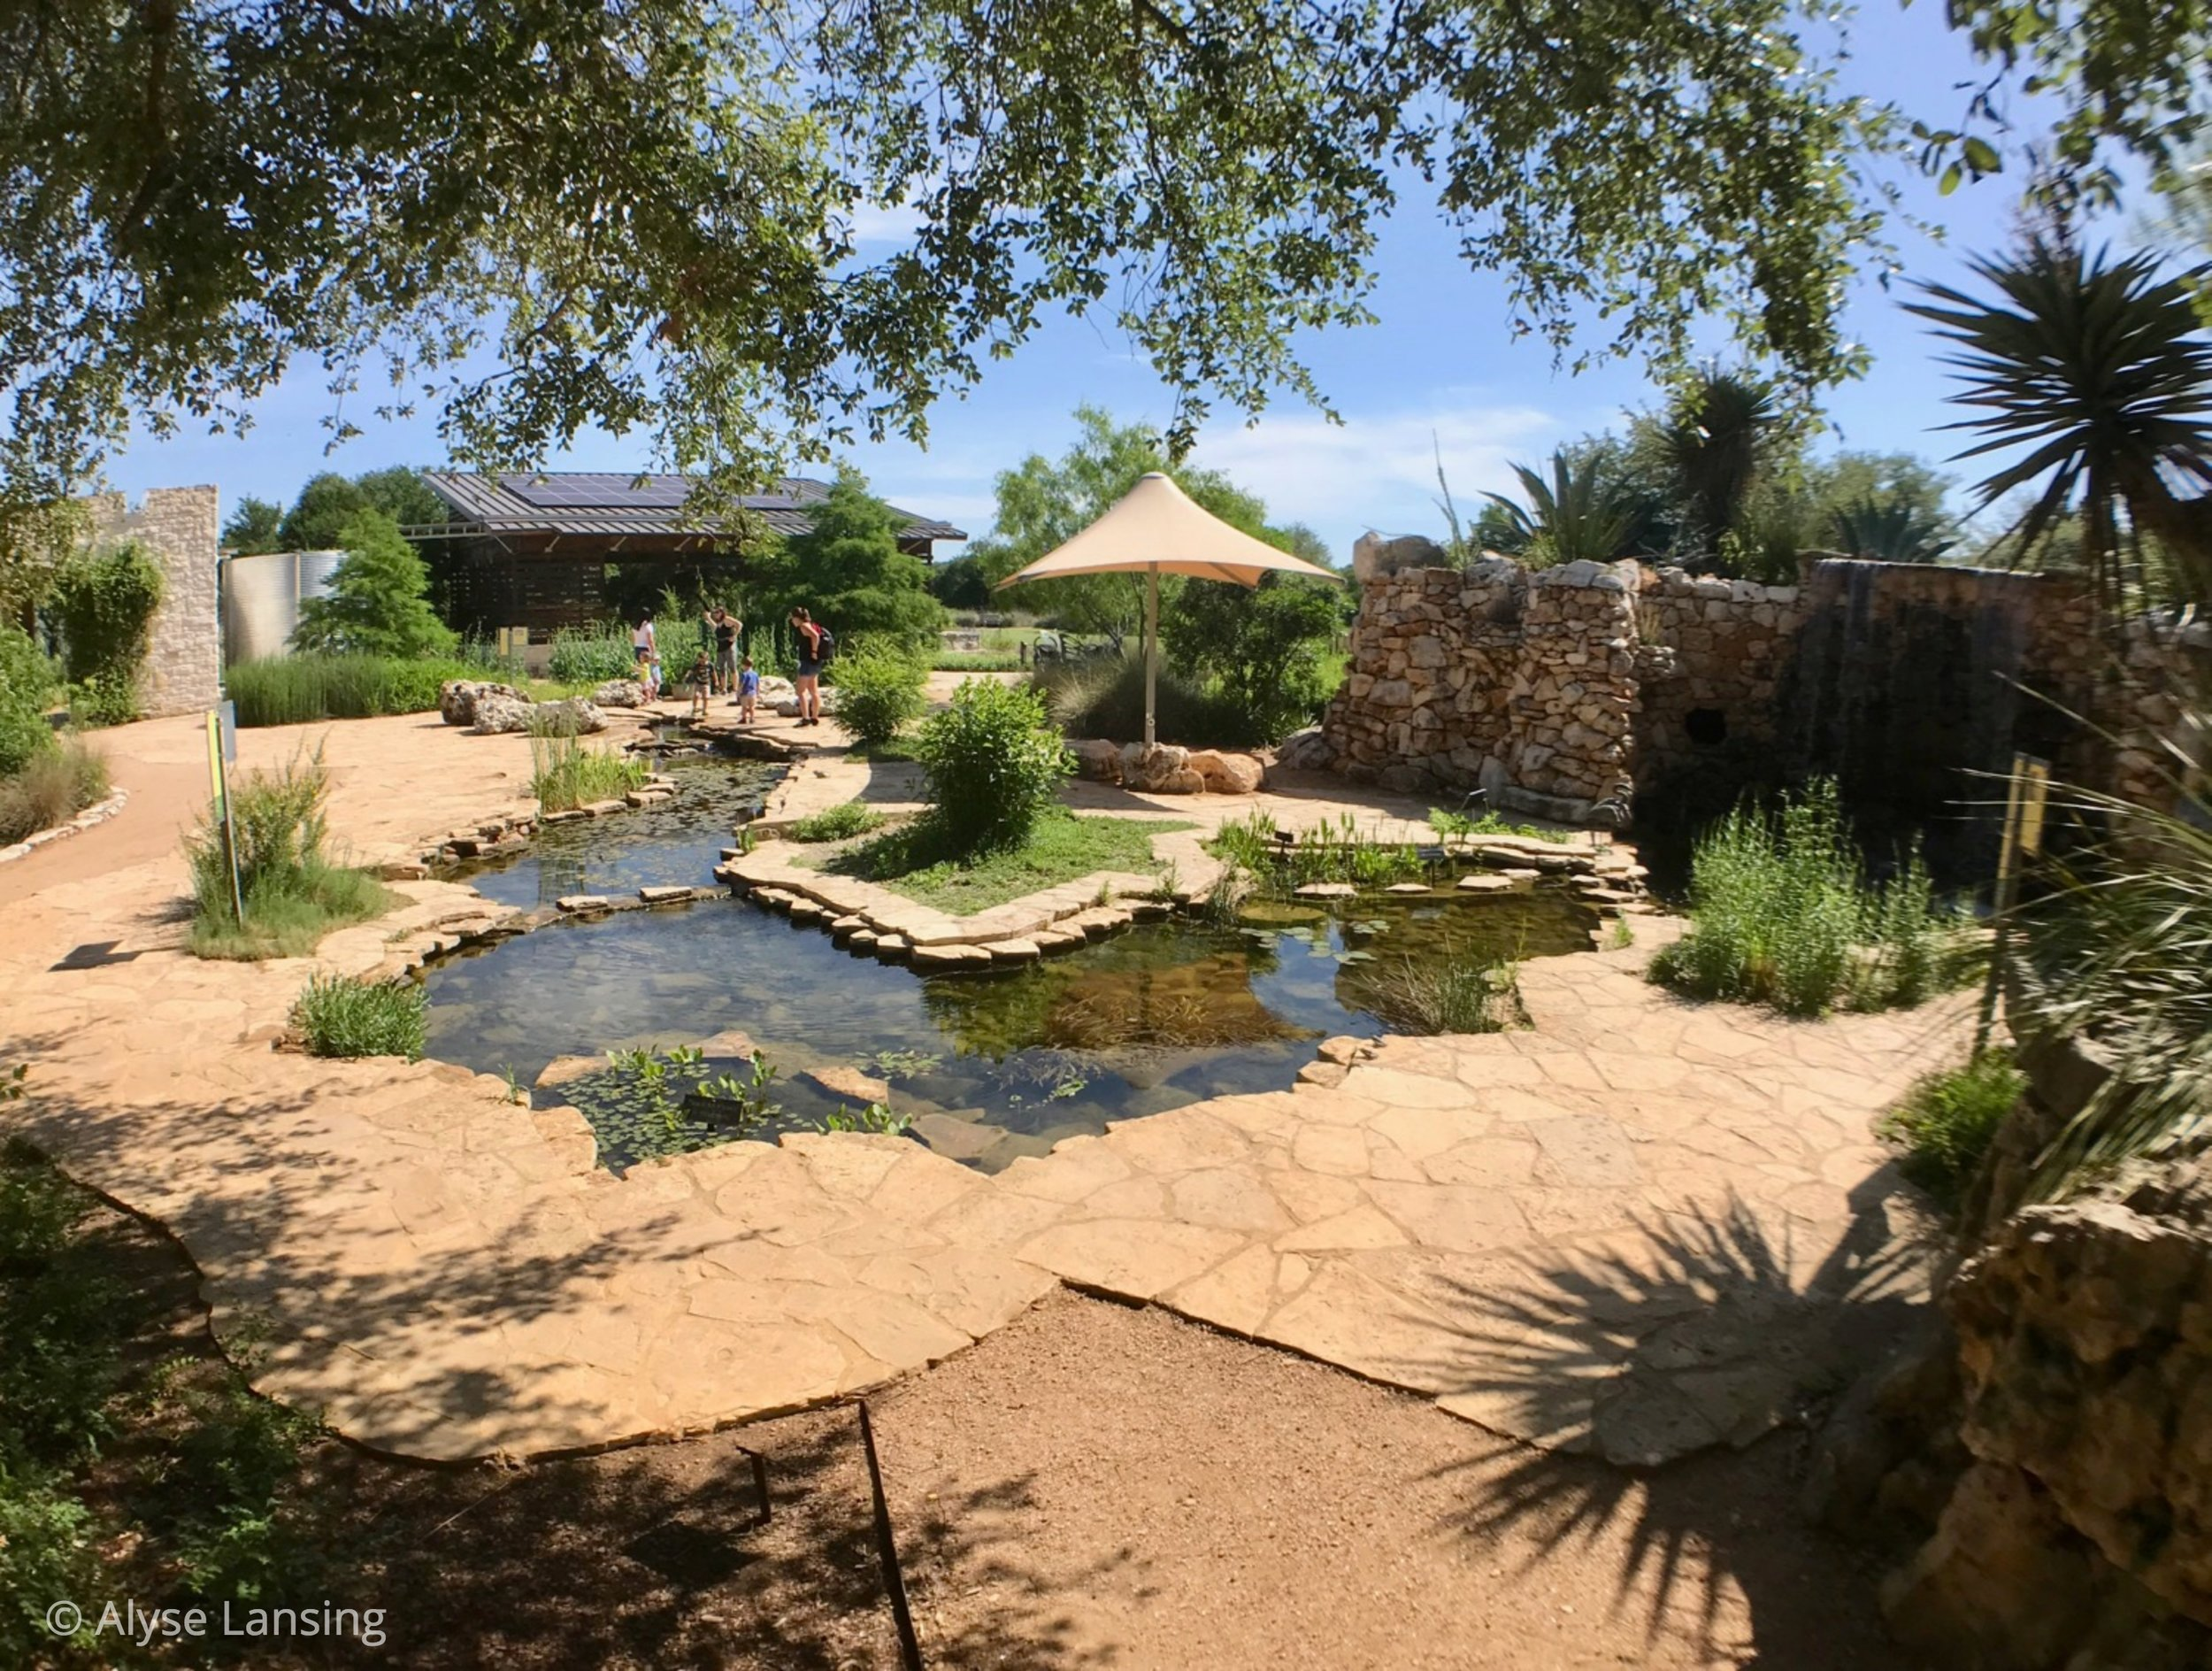 This is the Dinosaur Creek water feature, as it winds down and around from the waterfall on the right.